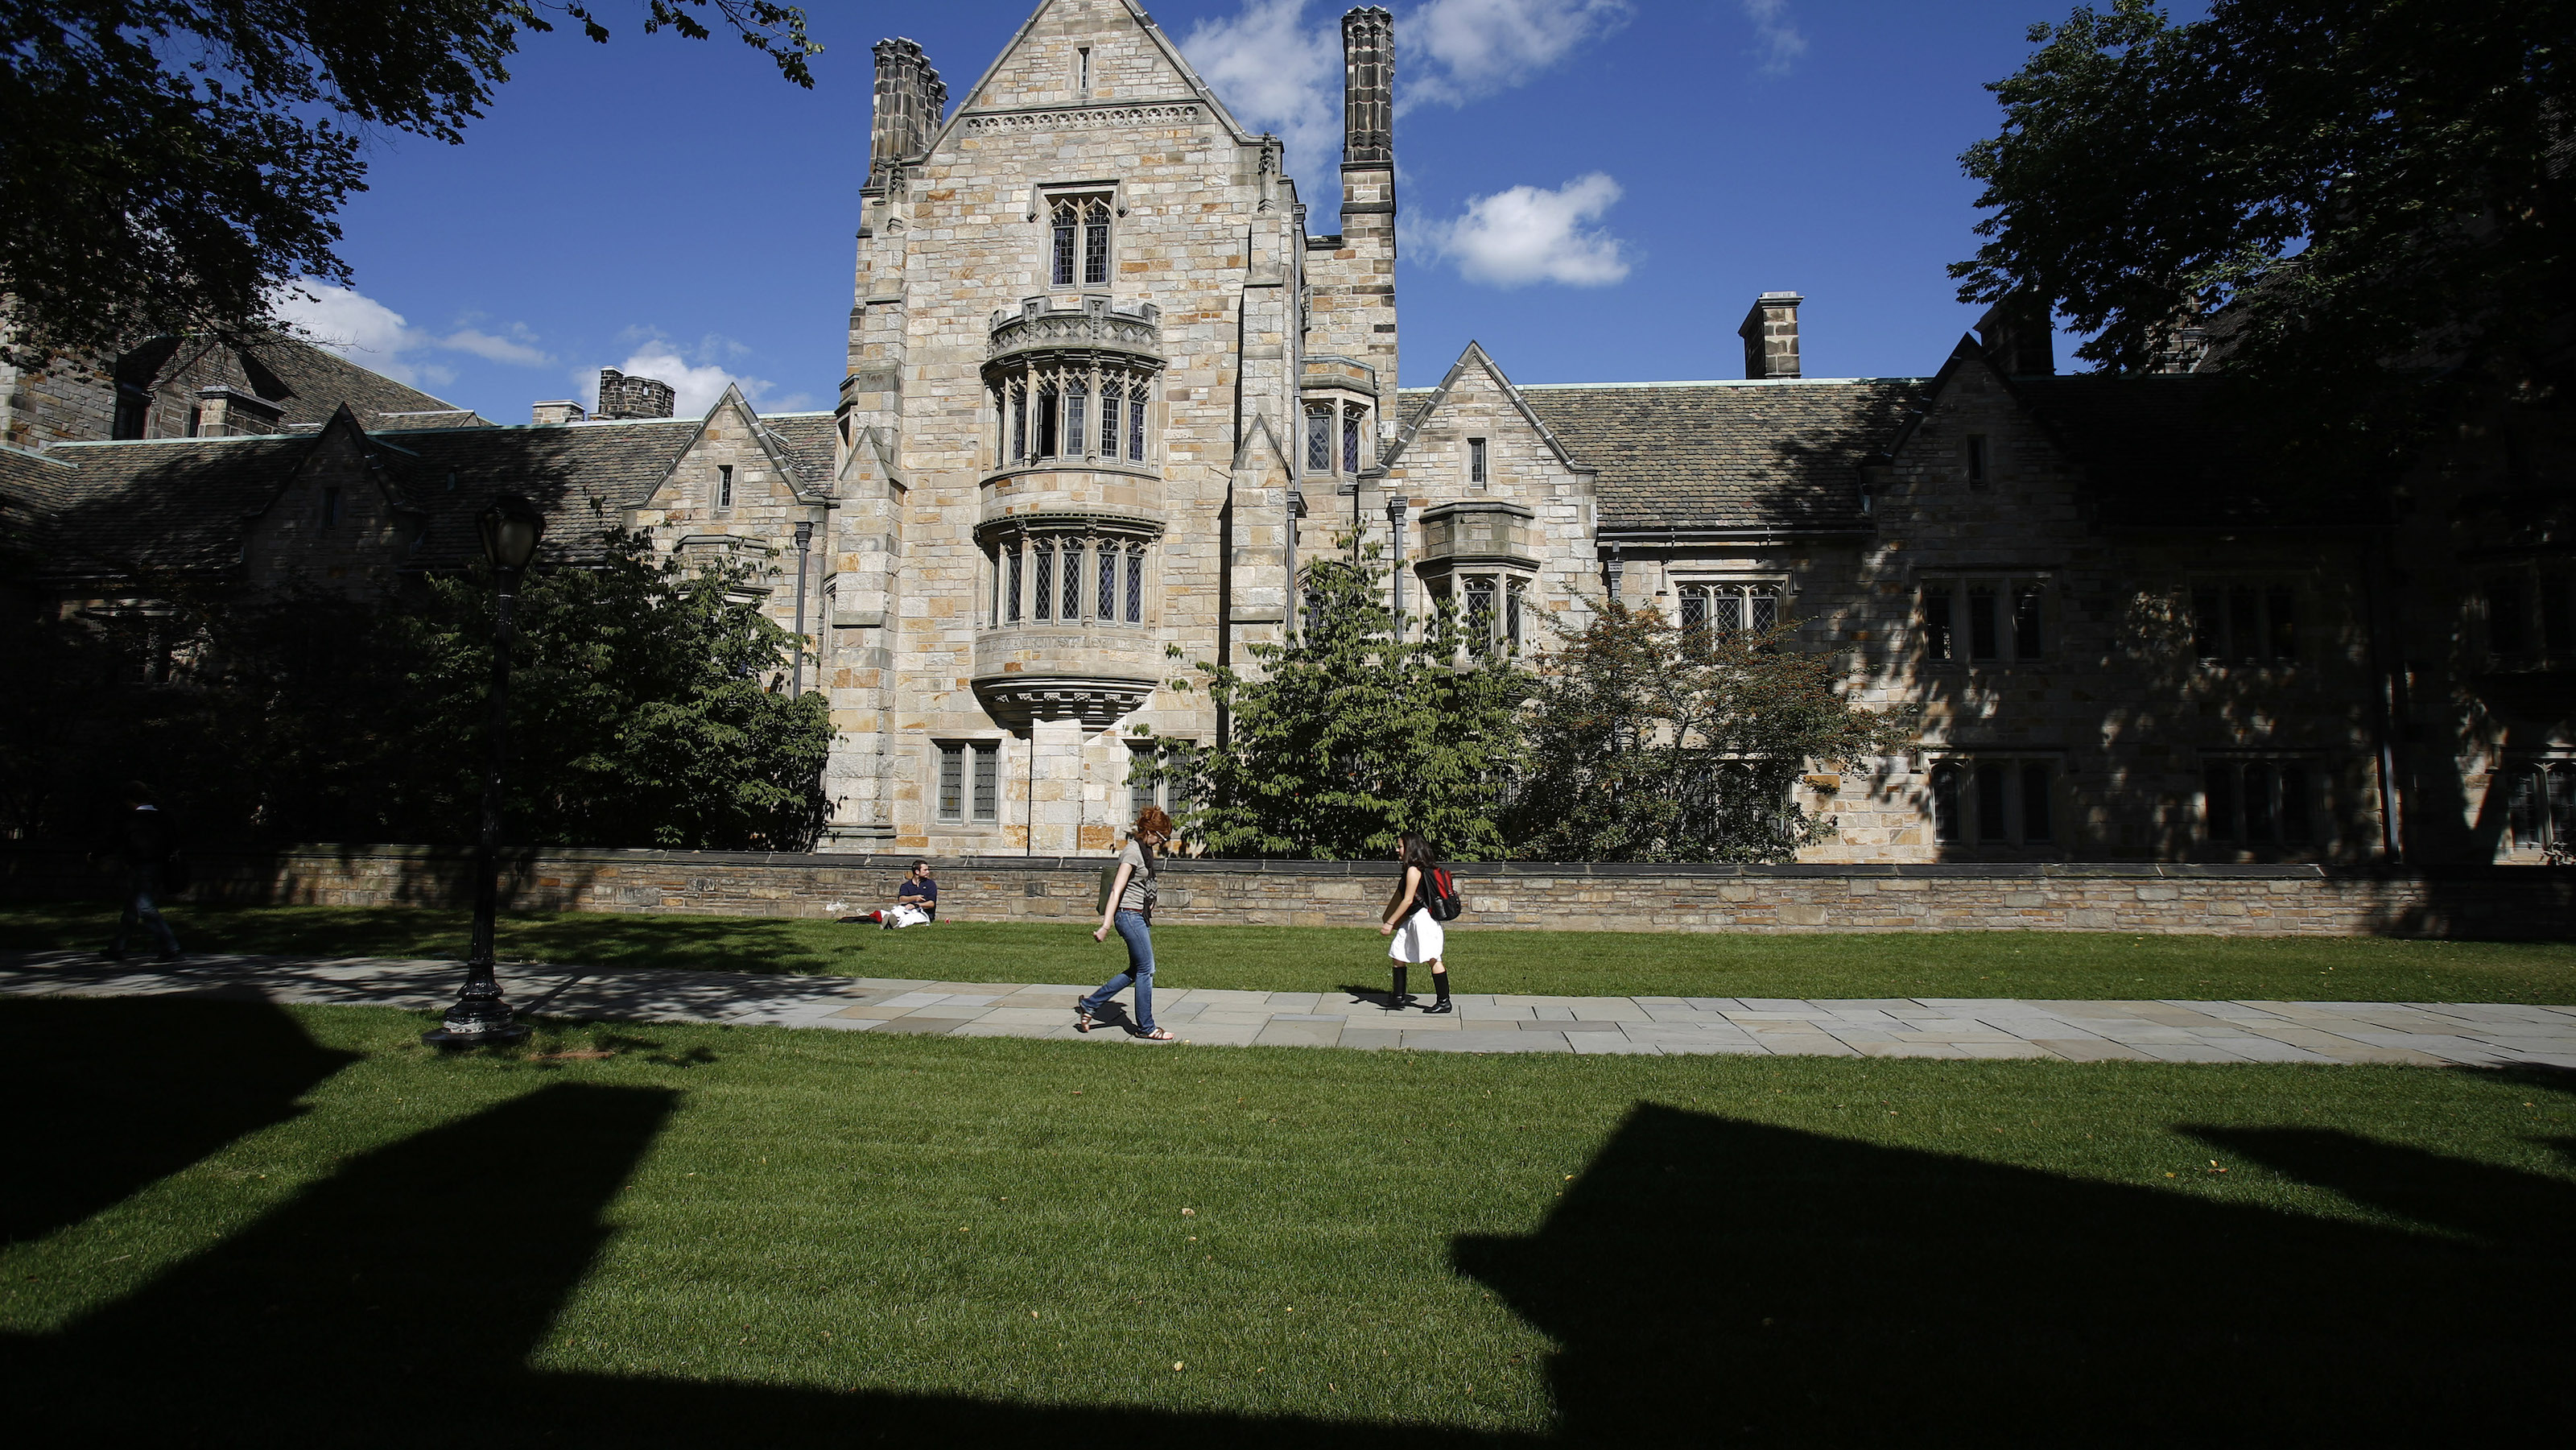 Students walk on the campus of Yale University in New Haven, Connecticut, October 7, 2009.  REUTERS/Shannon Stapleton (UNITED STATES) - RTXPEBX